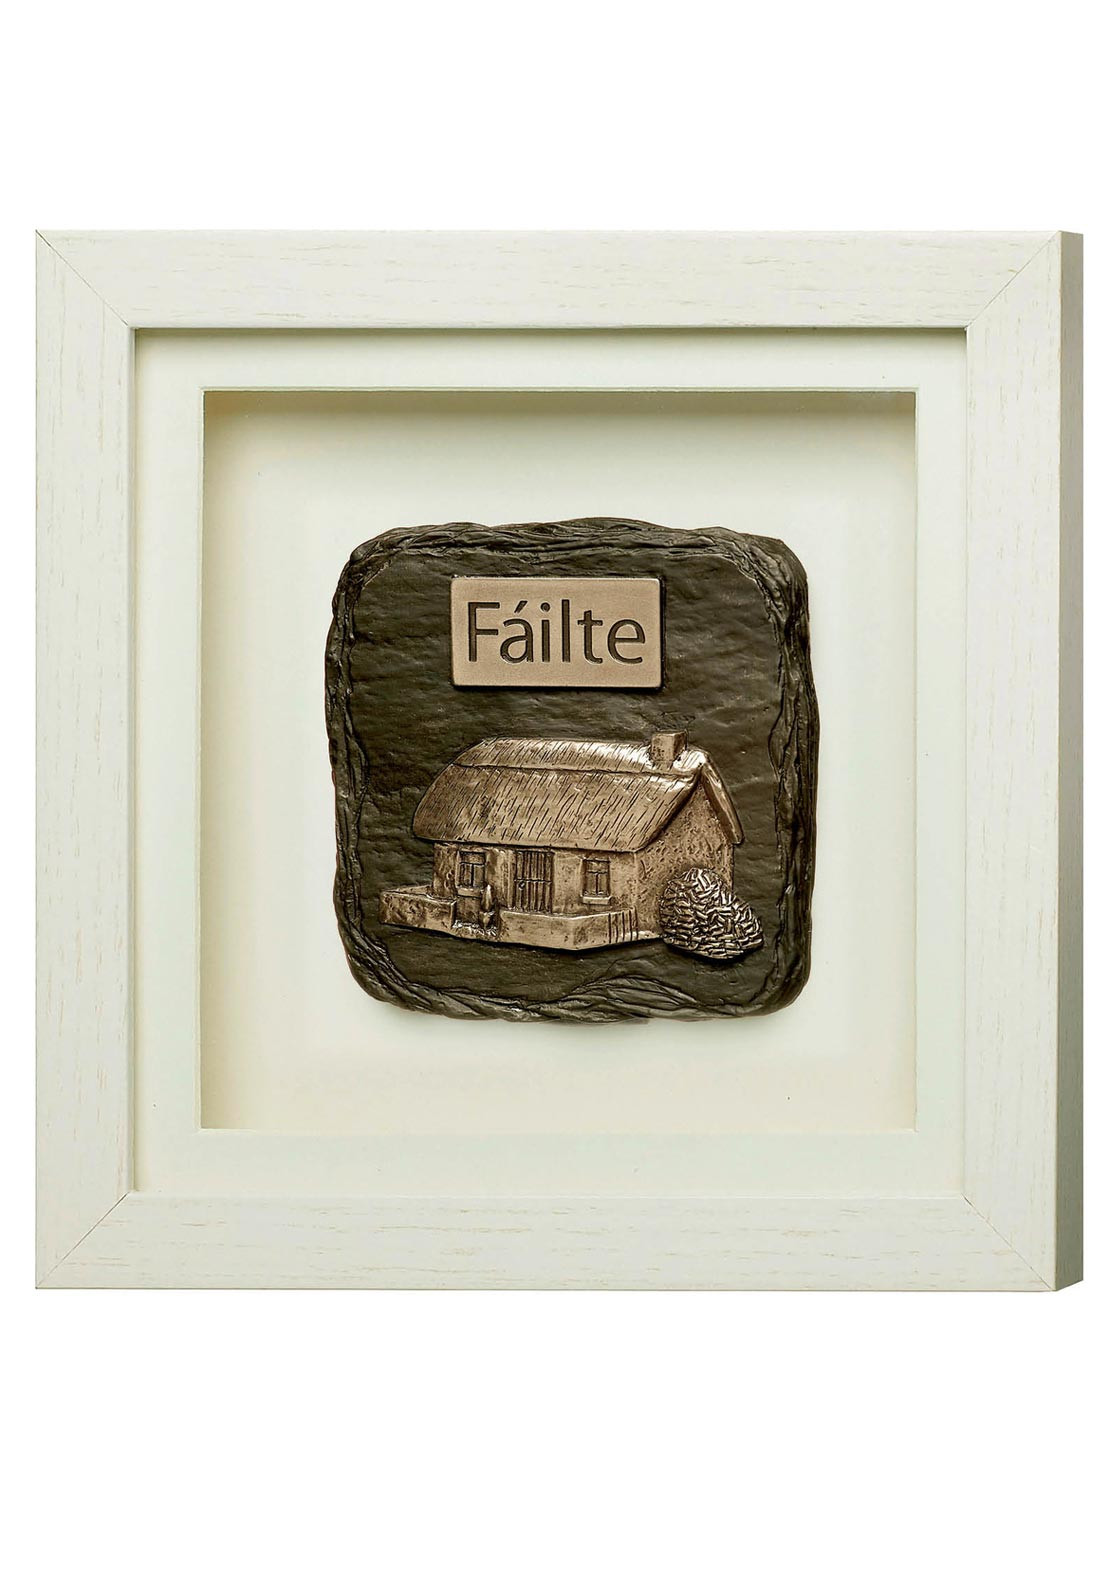 Genesis Failte Frame Ornament, White